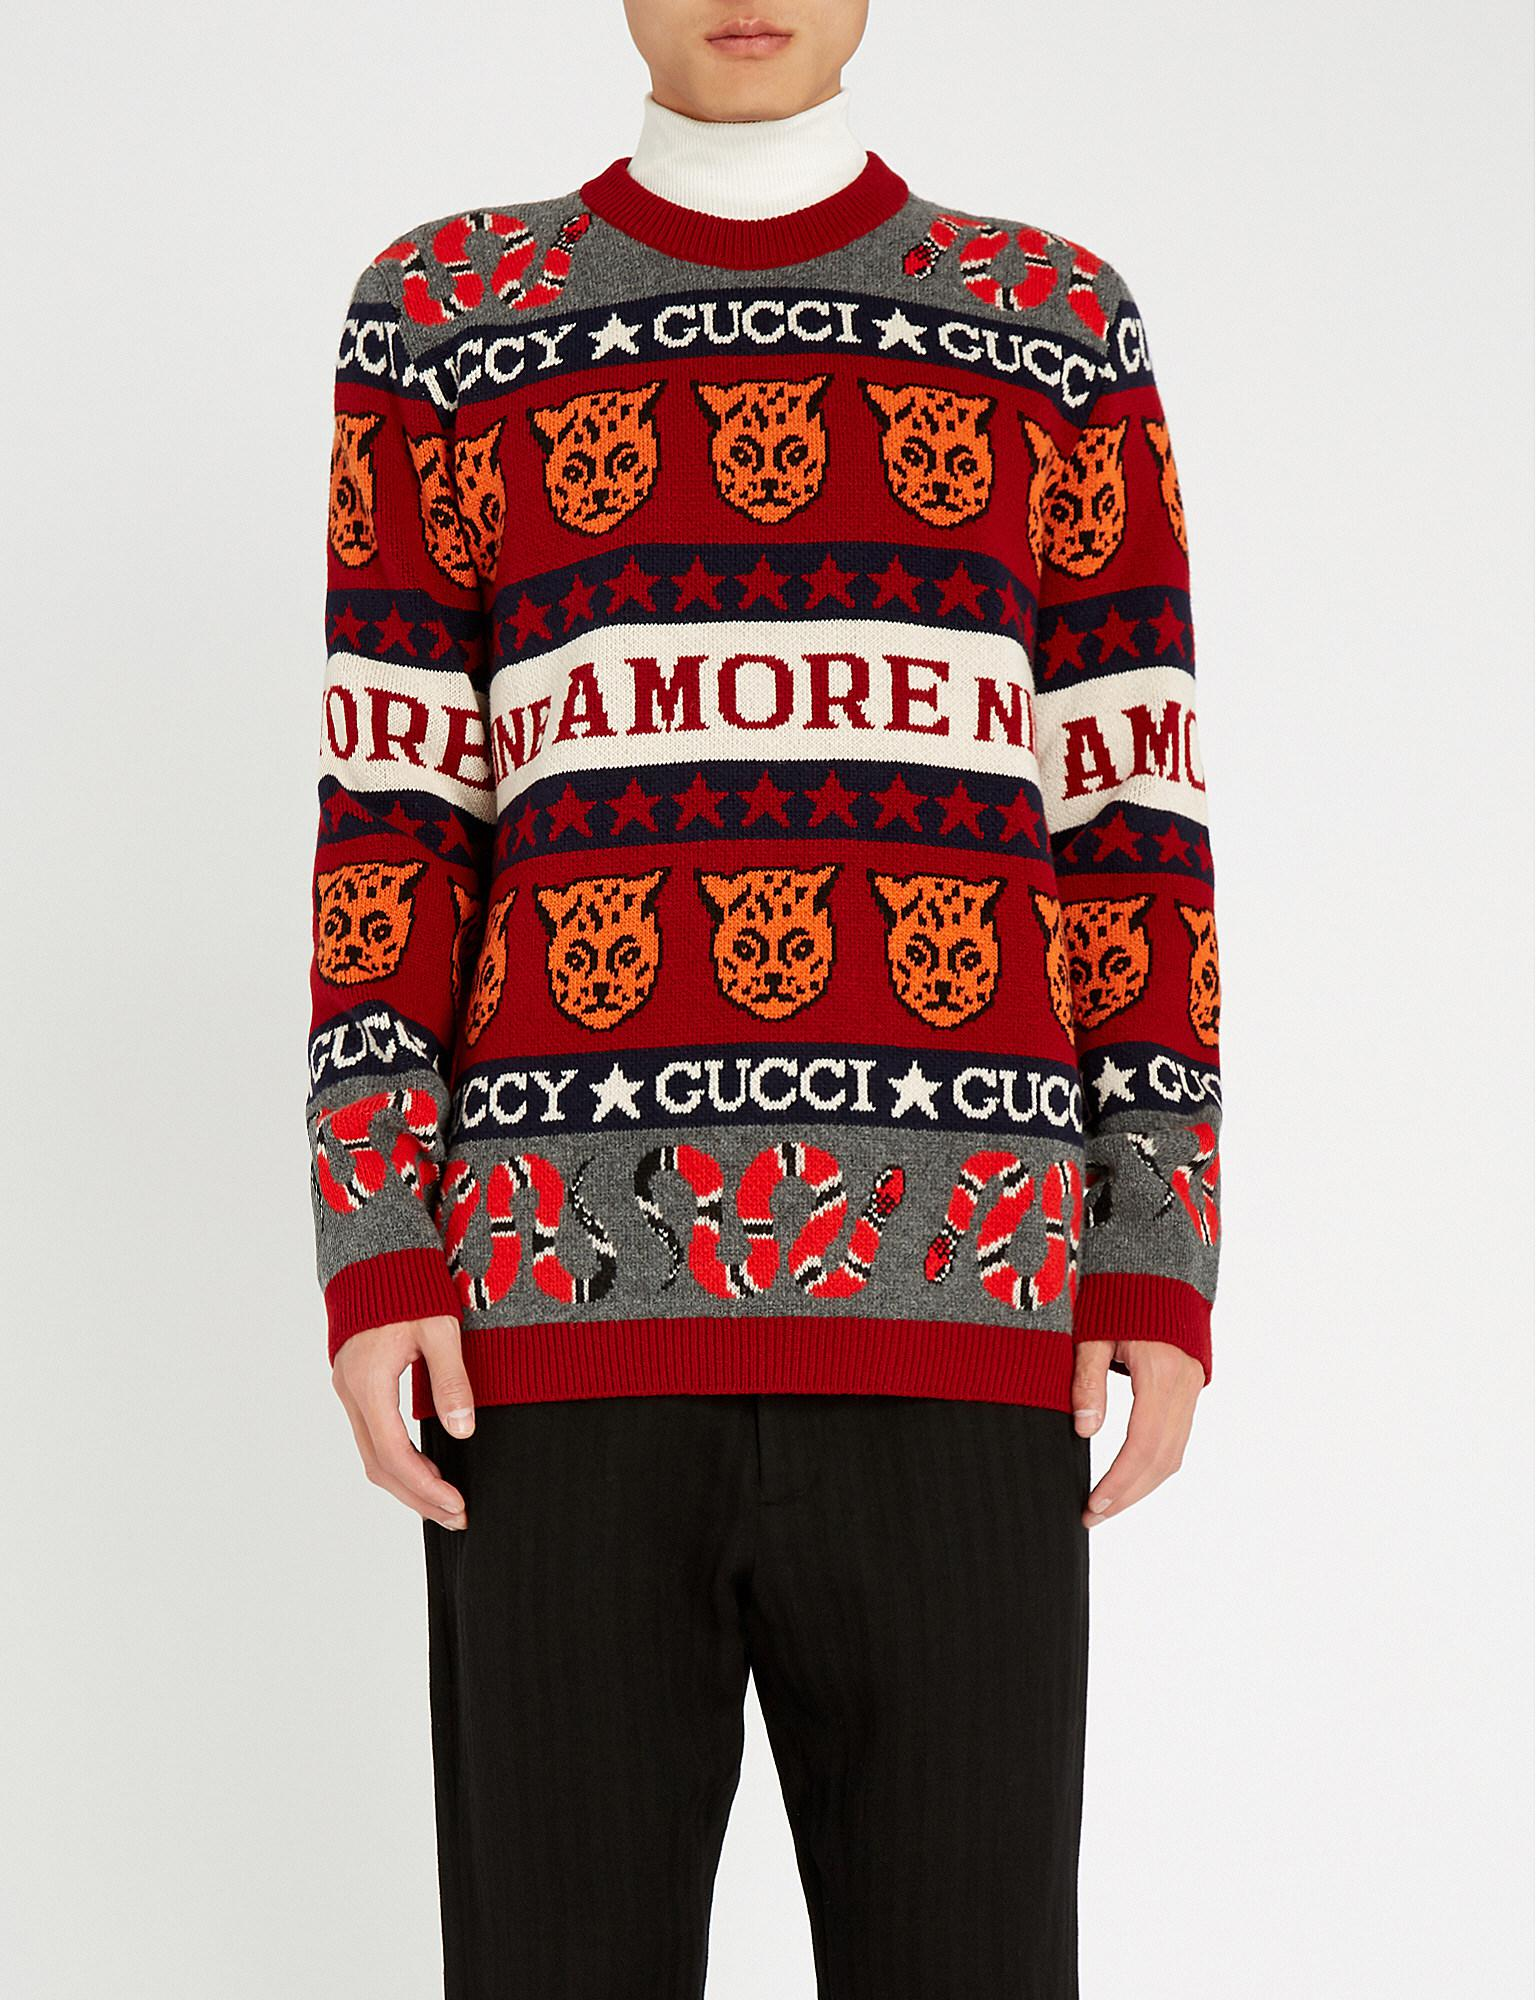 b3ae3acaa8d76 Lyst - Gucci Symbol Jacquard Jumper in Red for Men - Save 35%